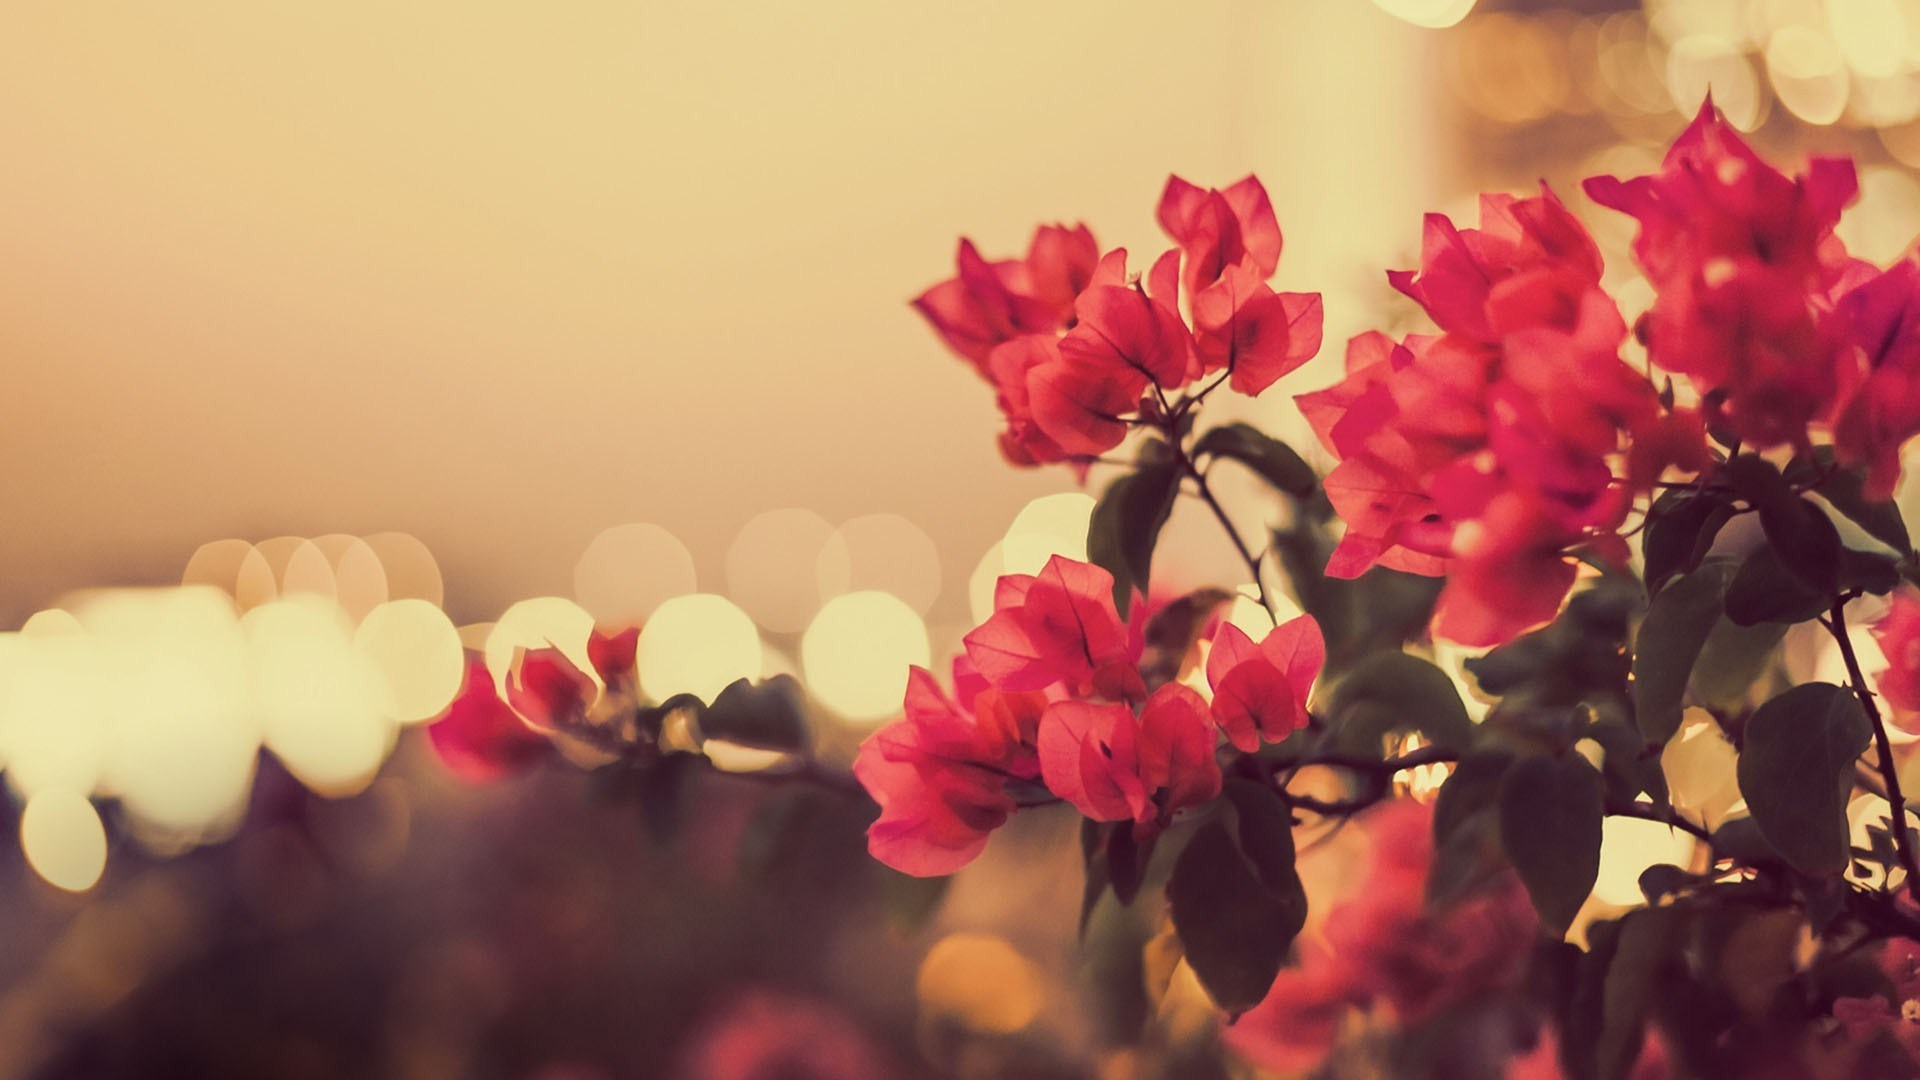 DOWNLOAD-Vintage-Photography-FULL-SIZE-wallpaper-wpc5804386